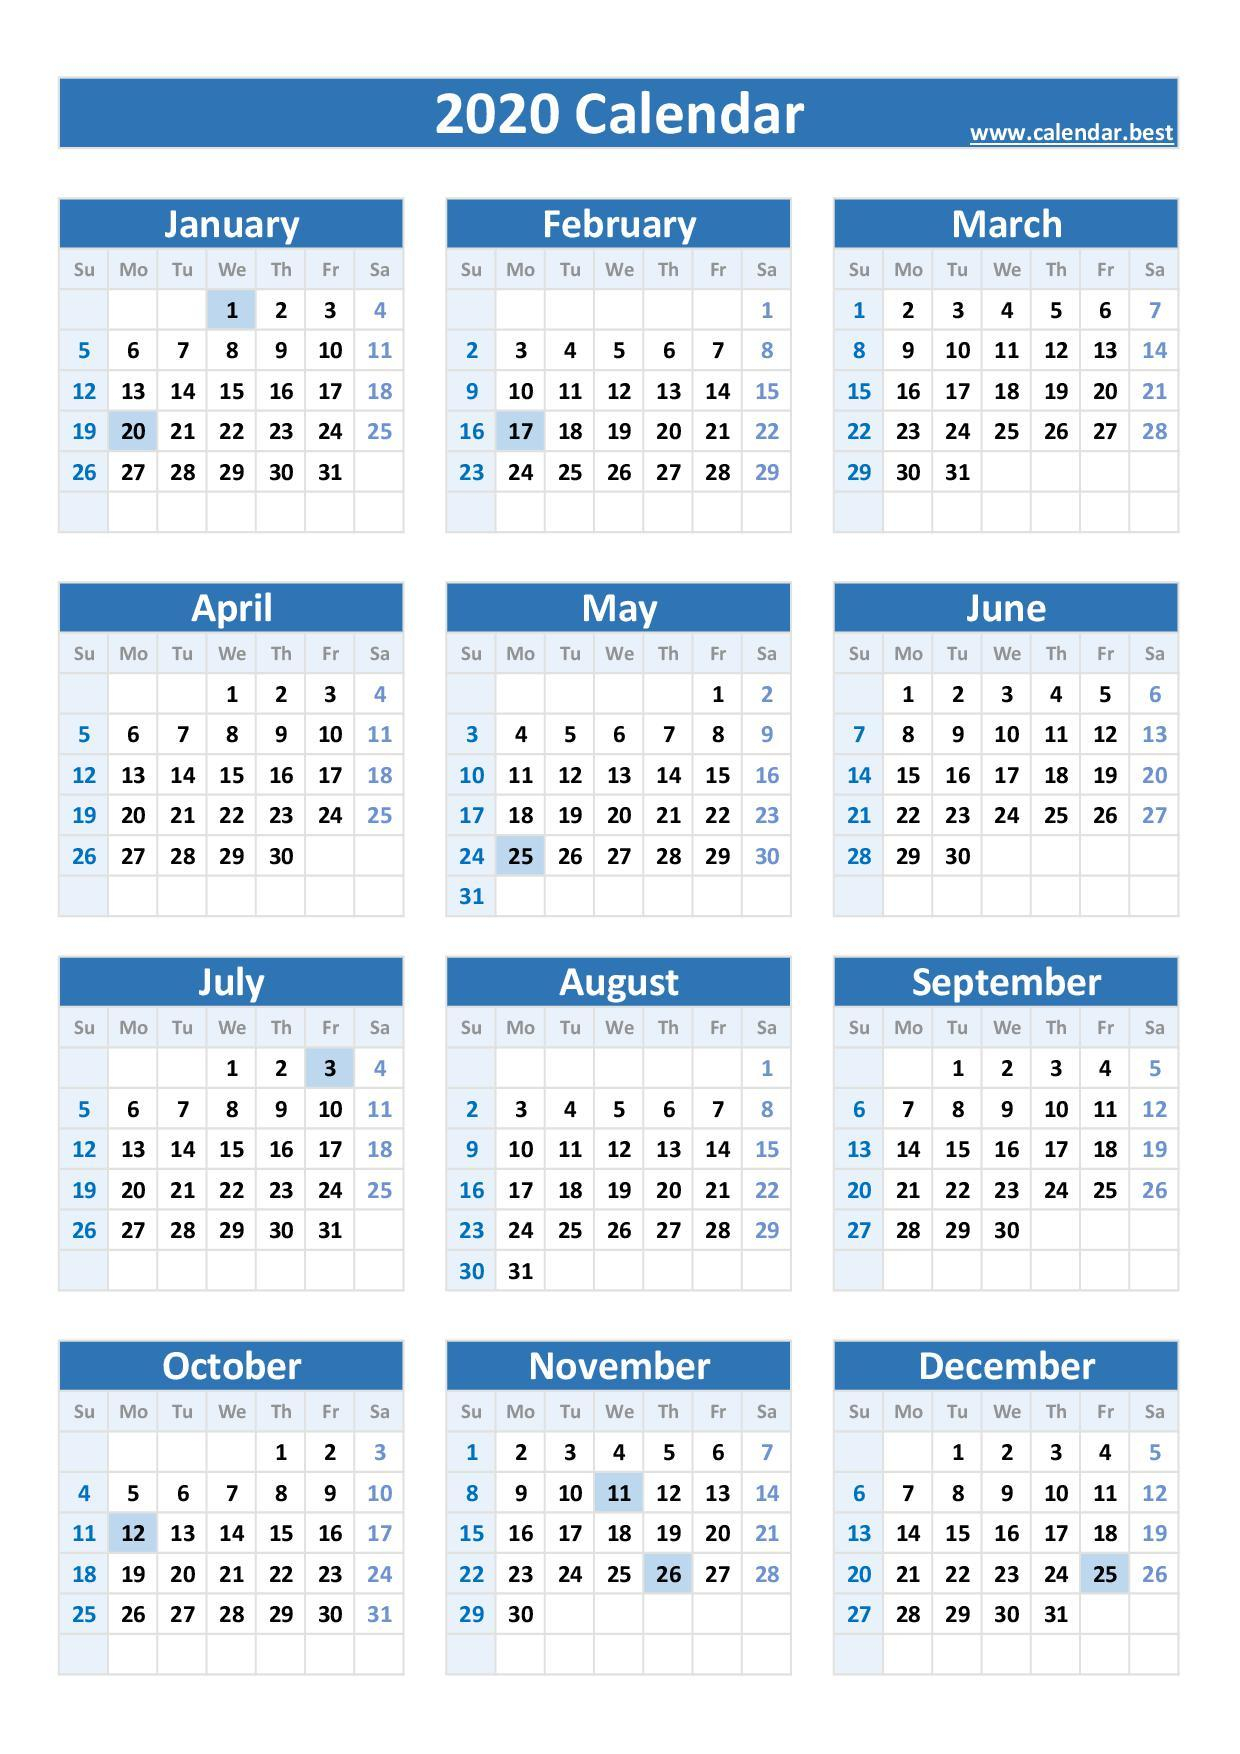 2020, 2021, 2022, 2023 Federal Holidays : List And Calendars